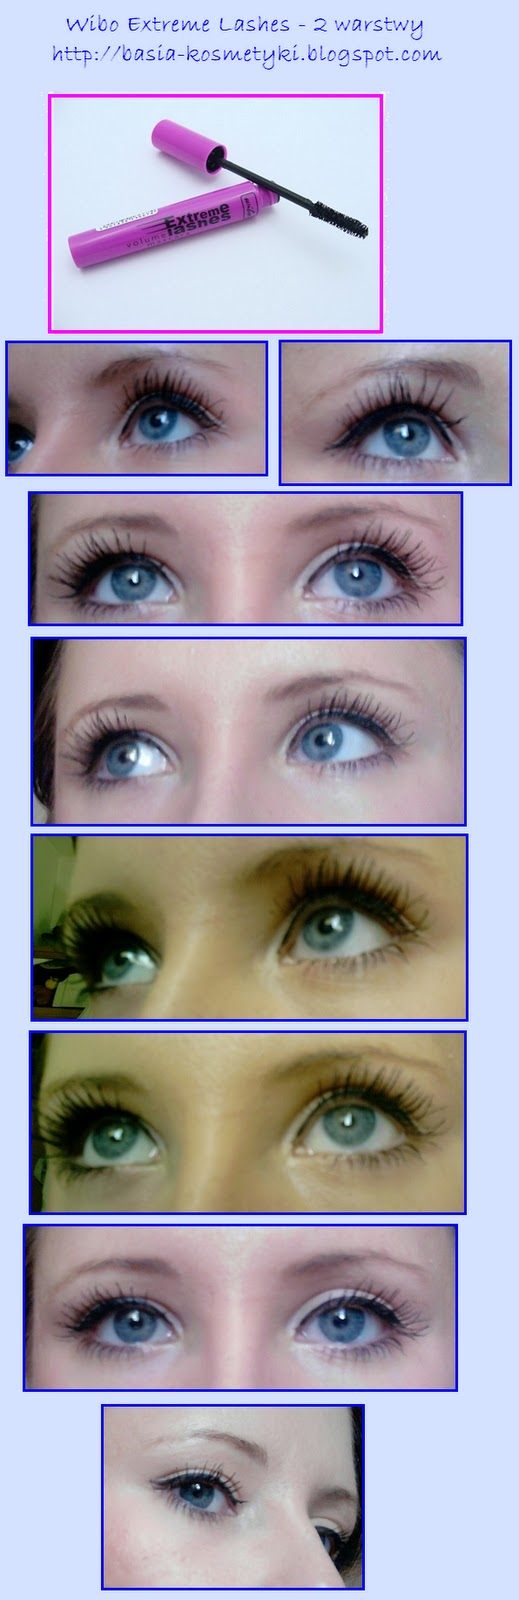 Wibo, Extreme Lashes Volume Mascara